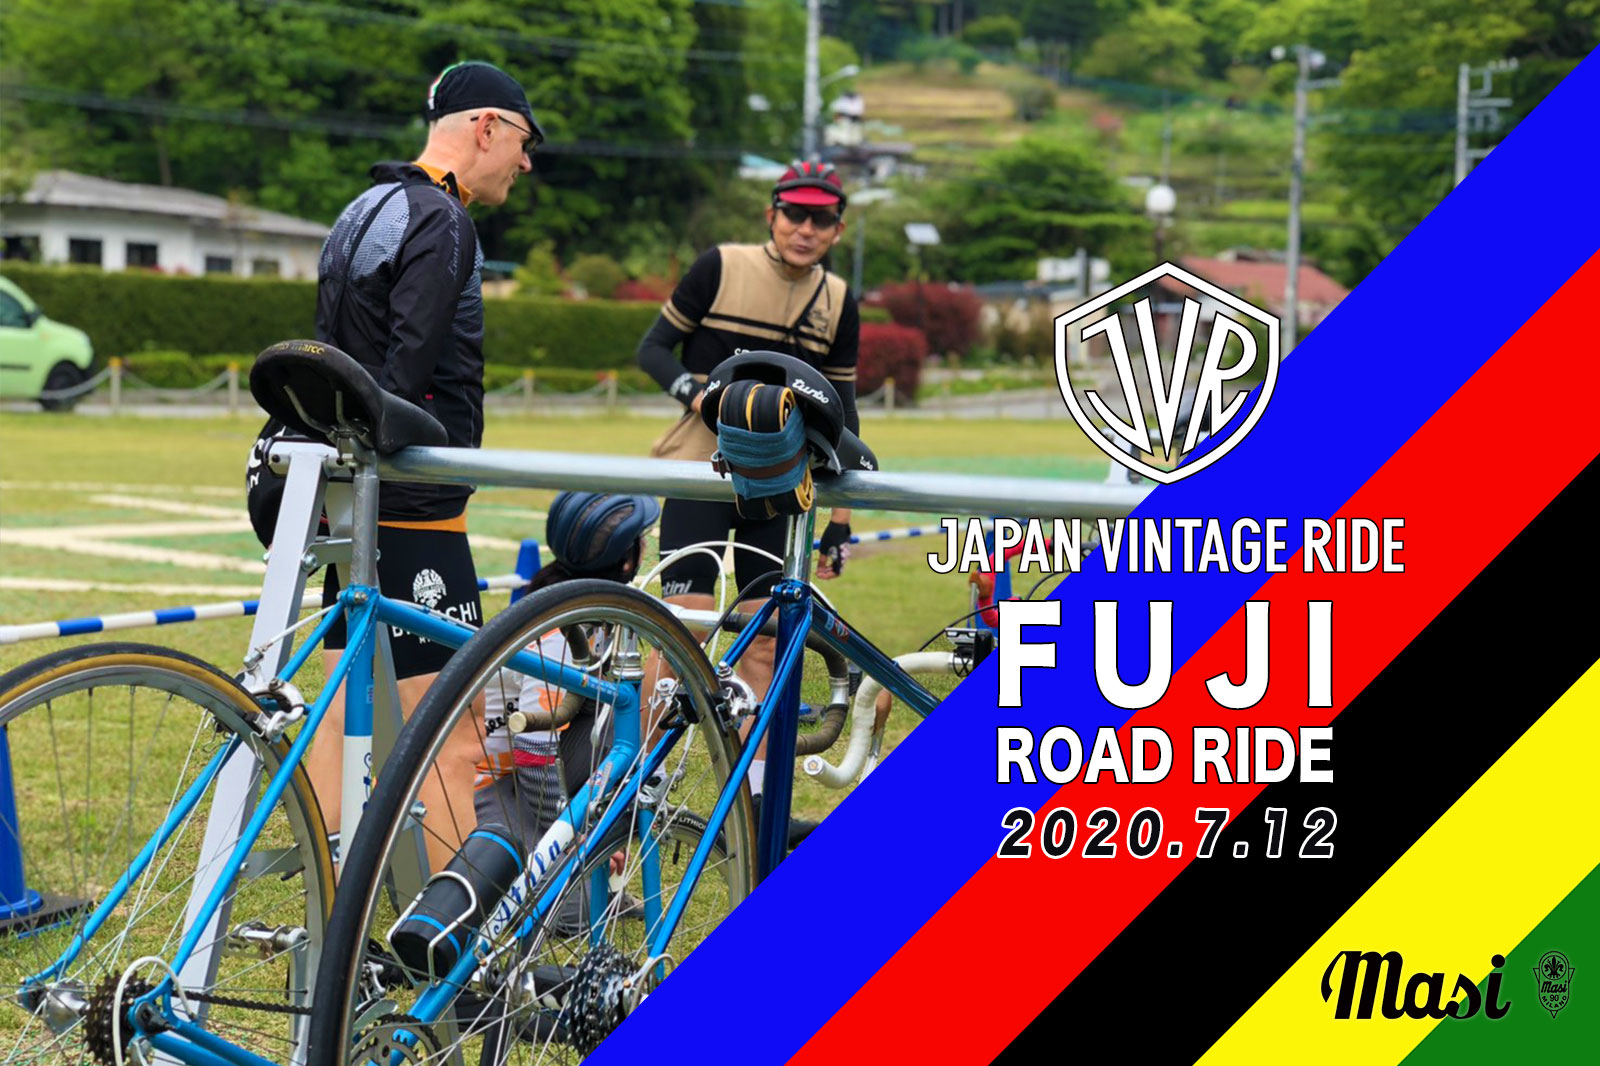 JVR FUJI ROAD RIDE